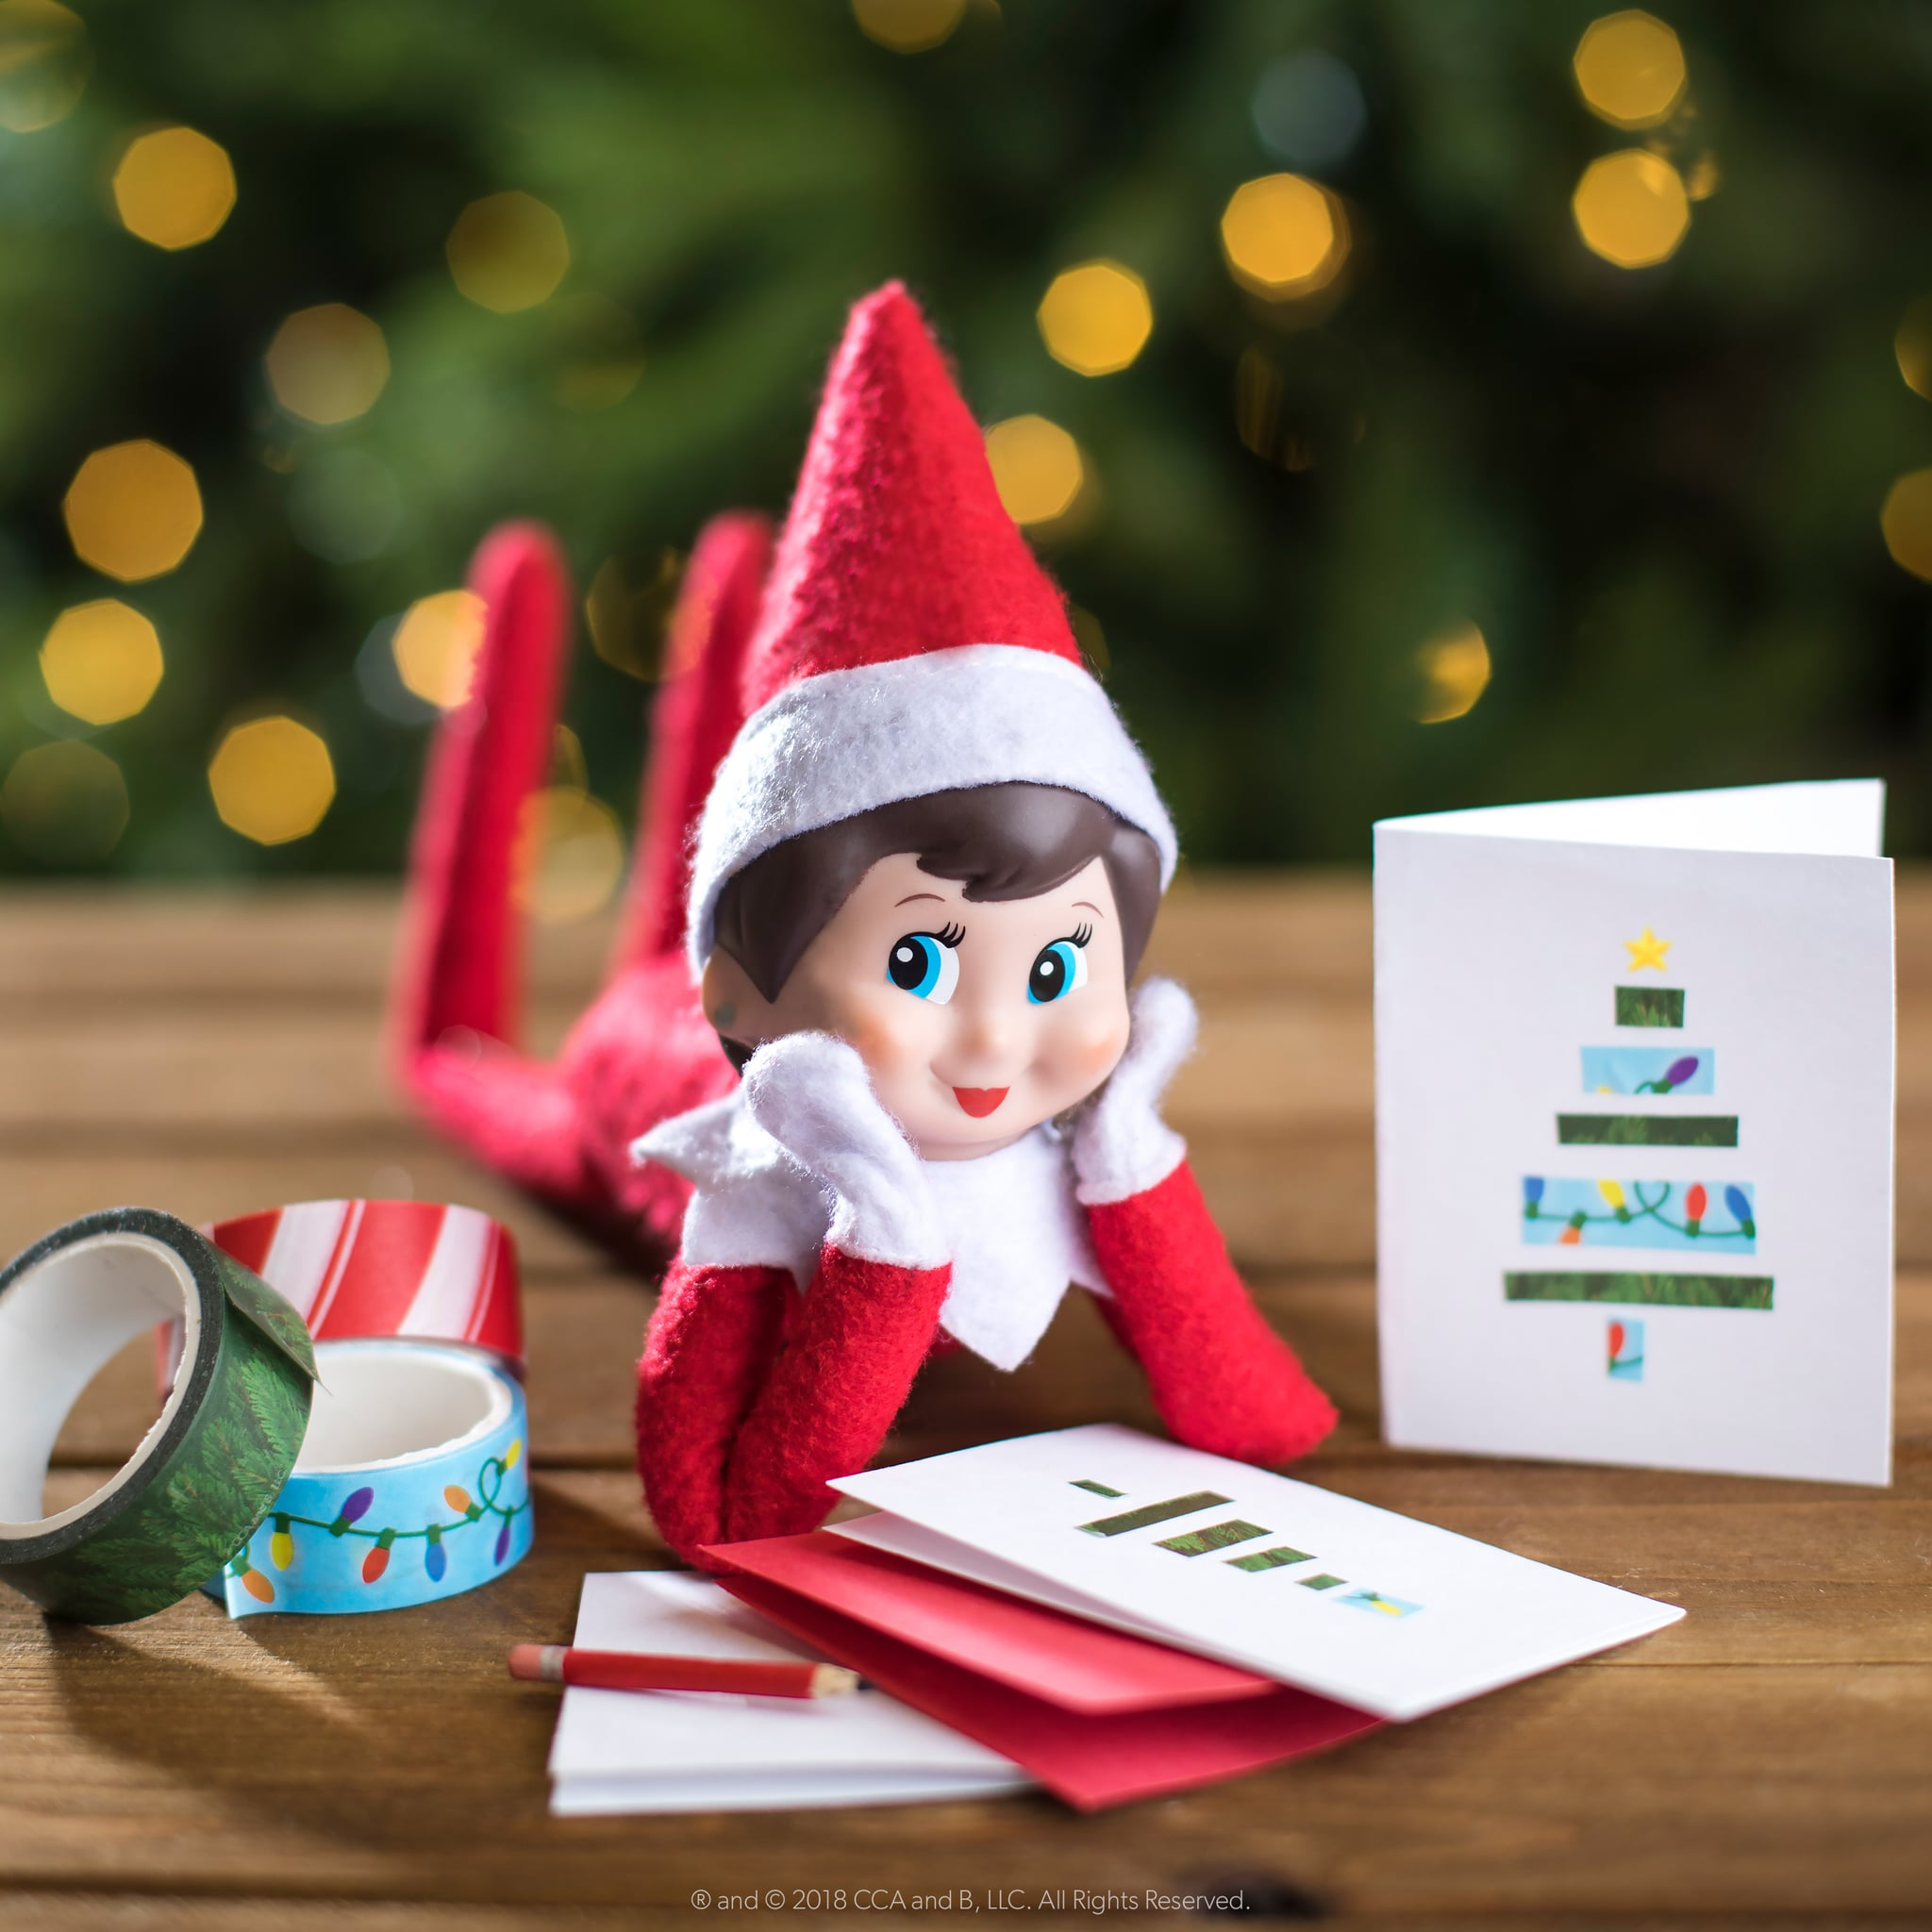 Christmas Elf On The Shelf Images.Elf On The Shelf Girl With Light Skin And Blue Eyes Elf On